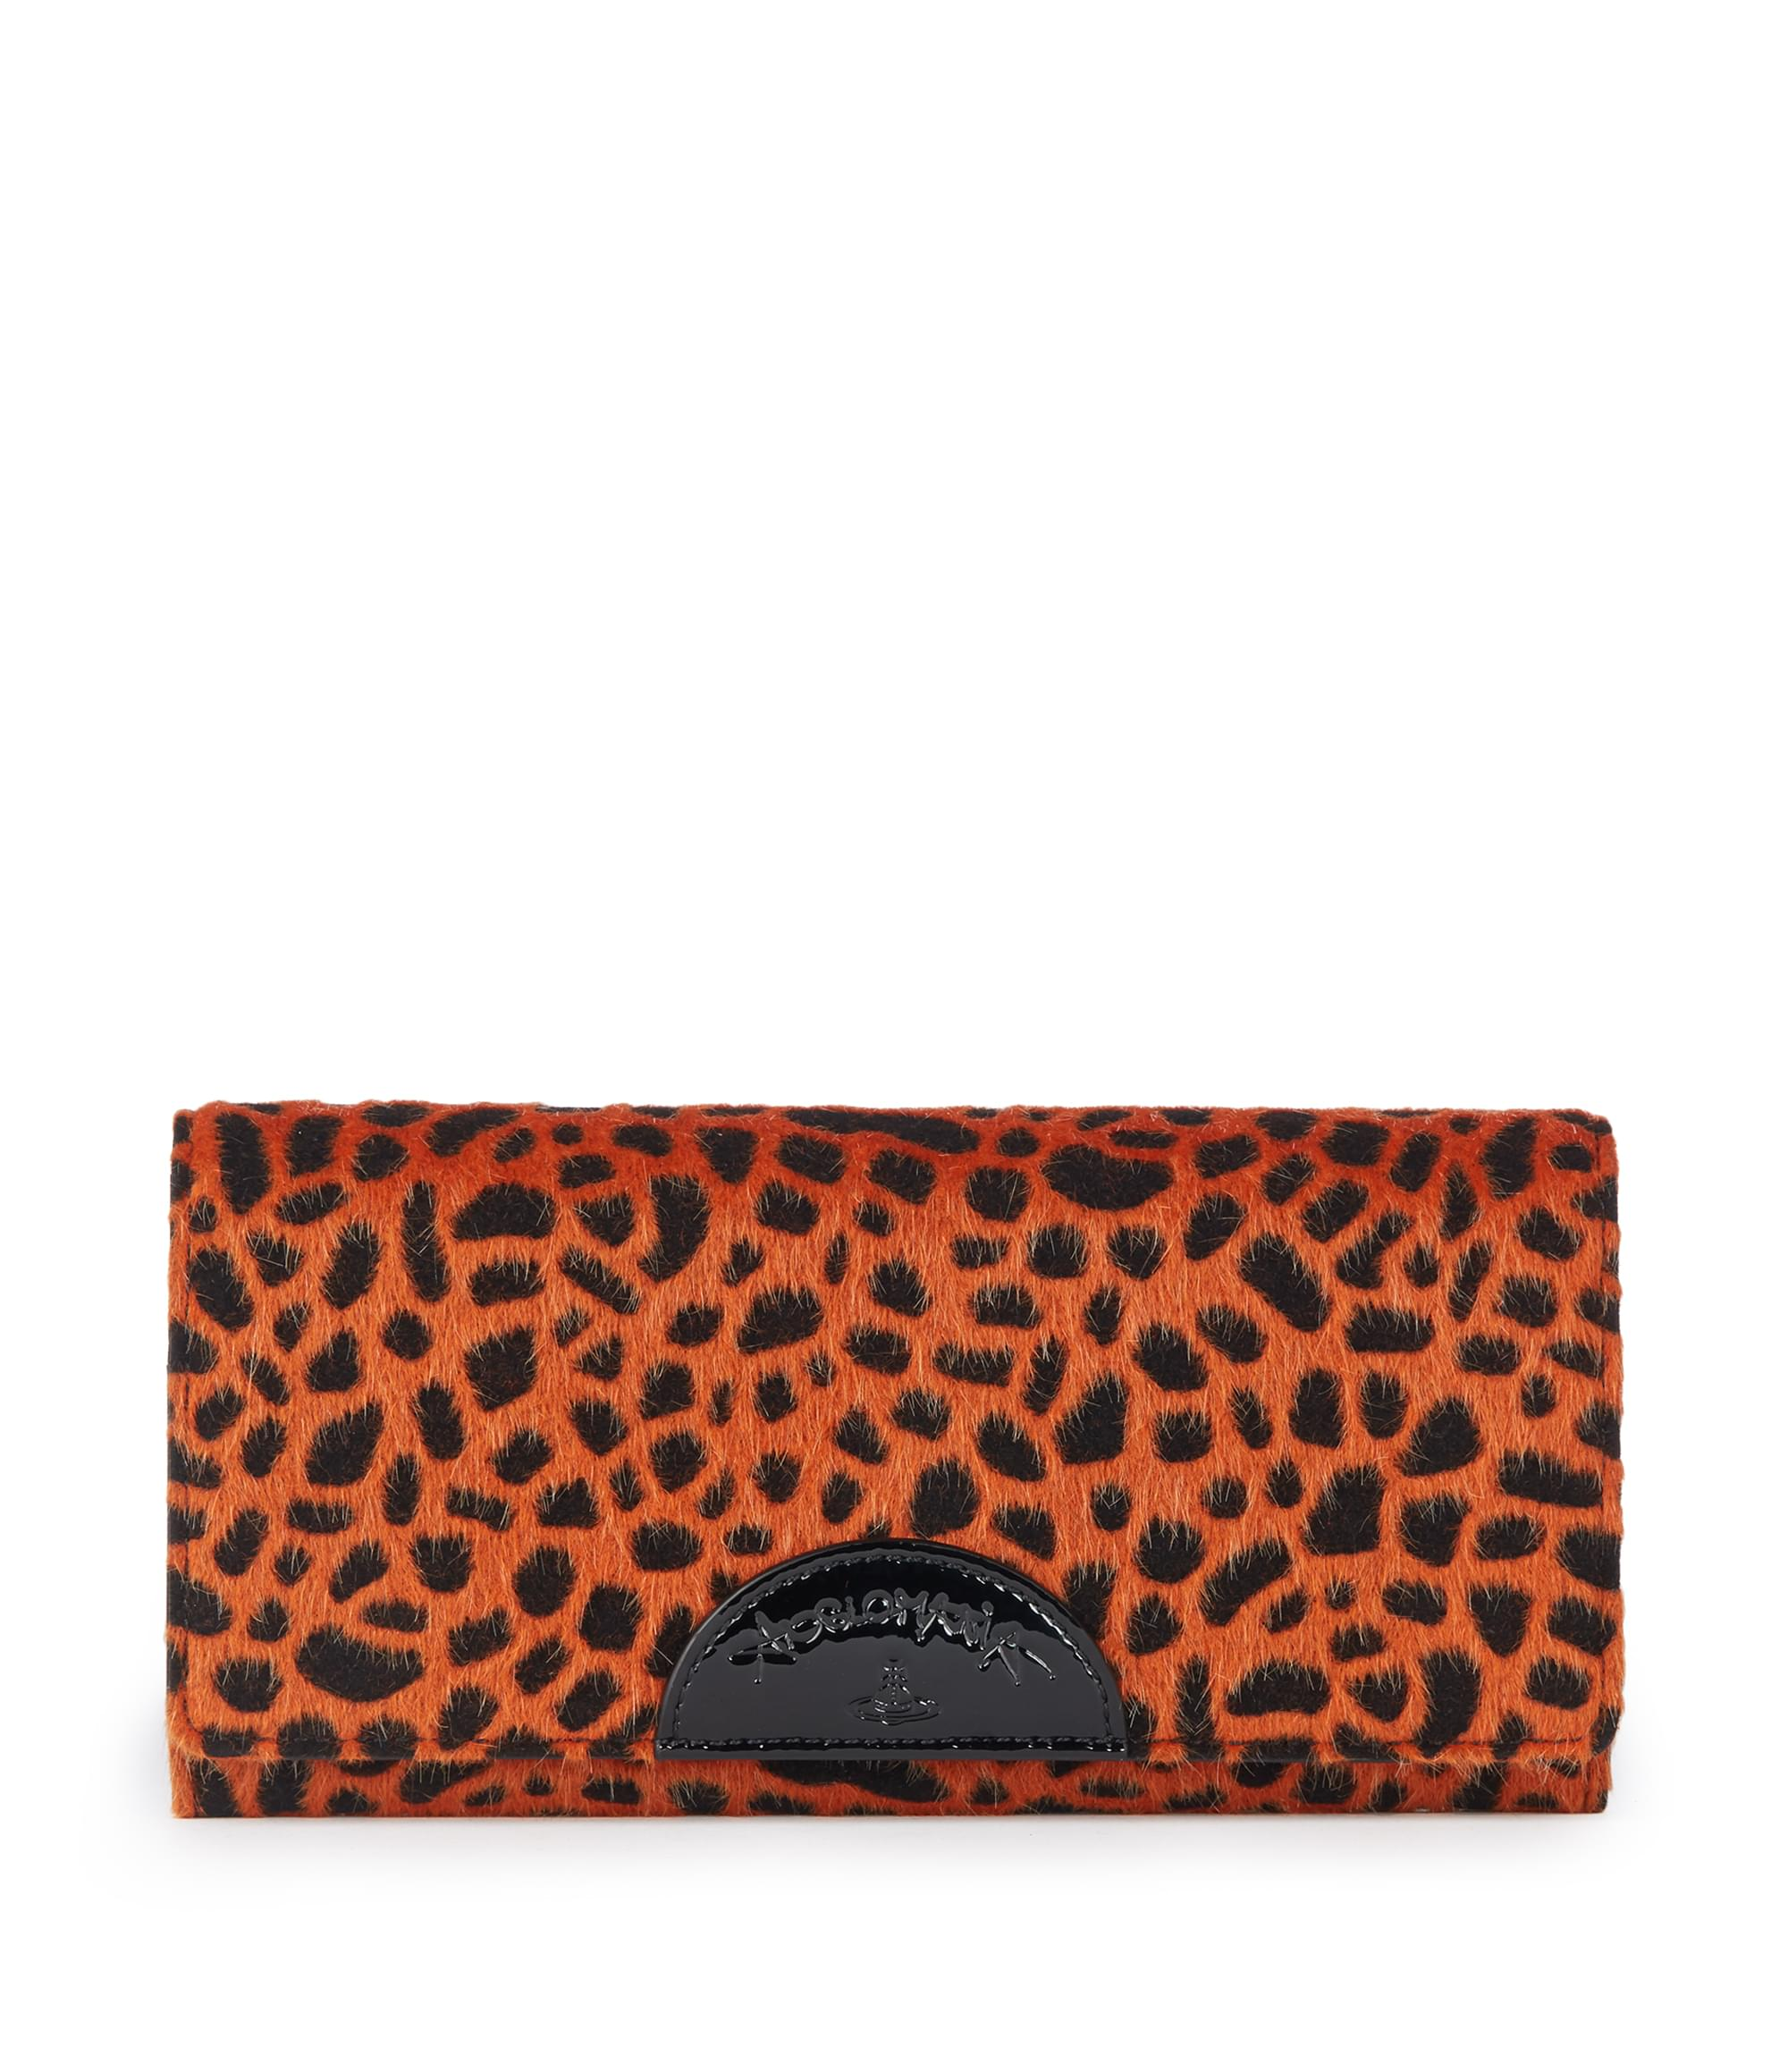 Vivienne Westwood Cheetah Wallet 51040001 Orange